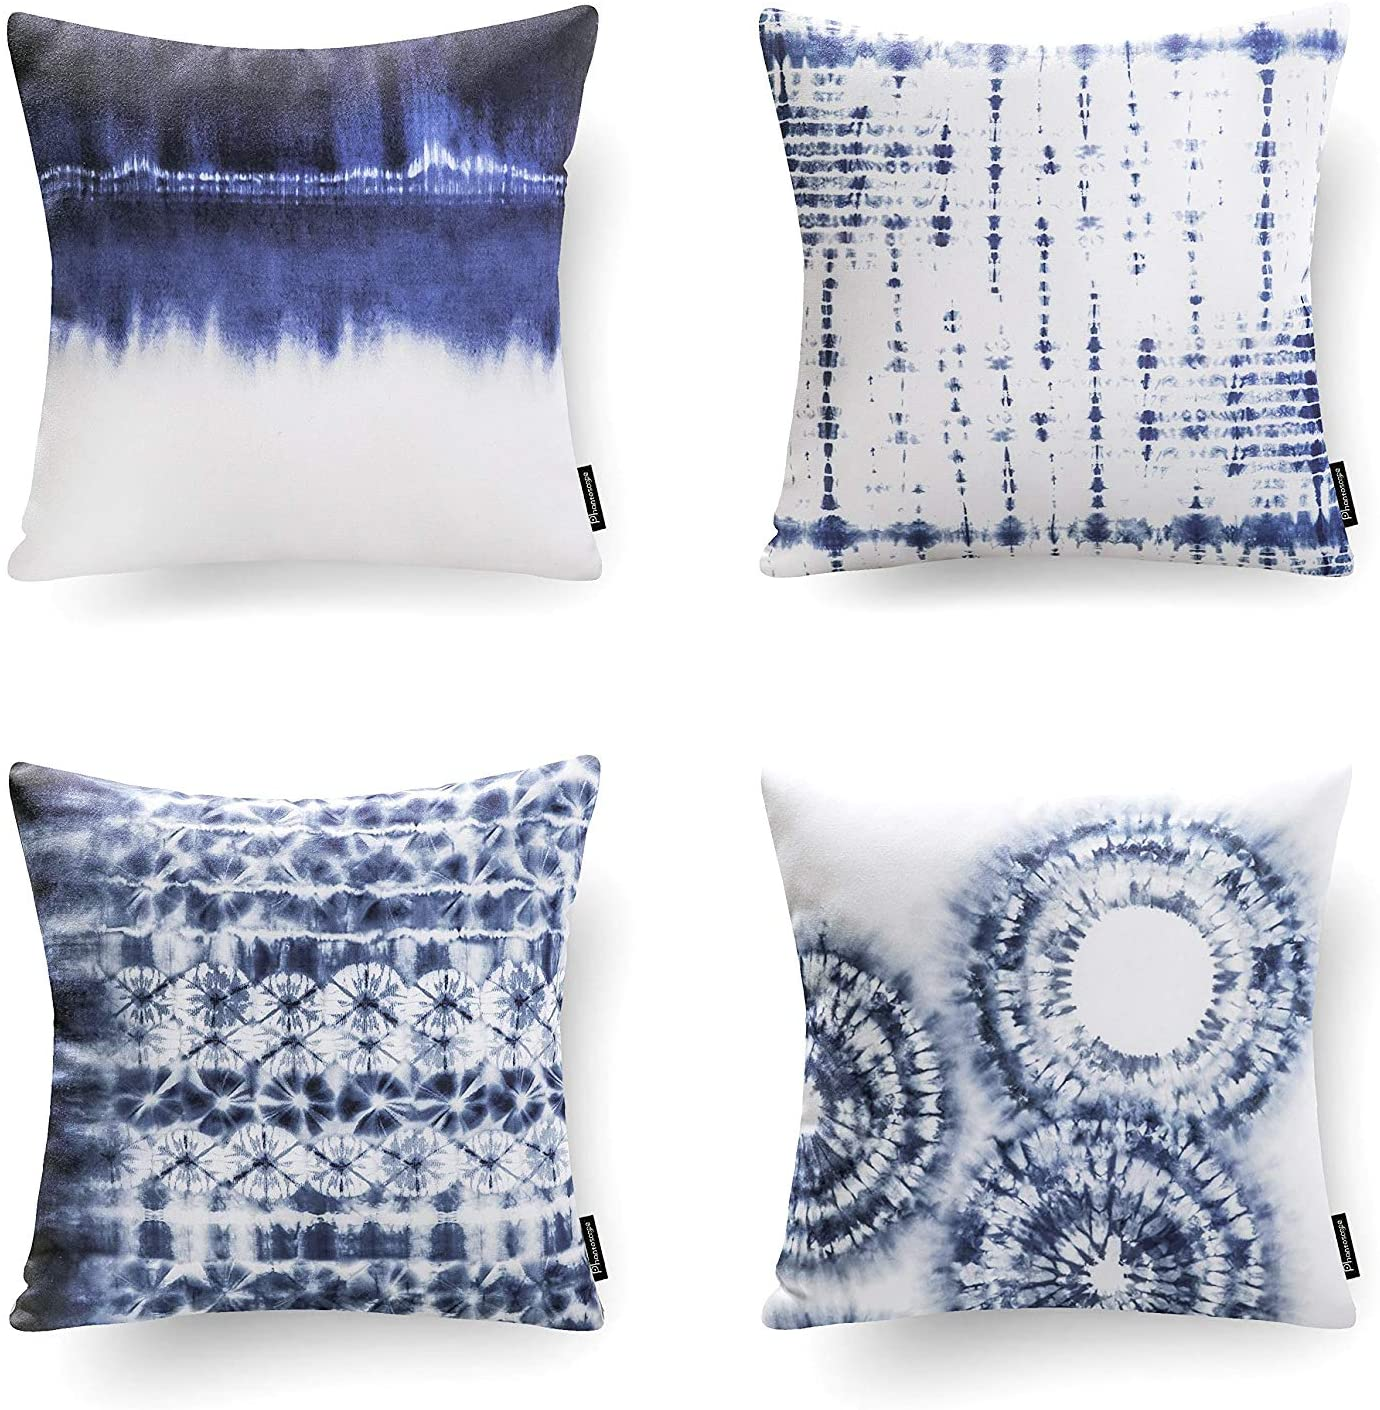 Phantoscope Set of 4 Porcelain Watercolor Printed Decorative Throw Pillow Case Cushion Cover, Blue and White, 18 x 18 inches, 45 x 45 cm